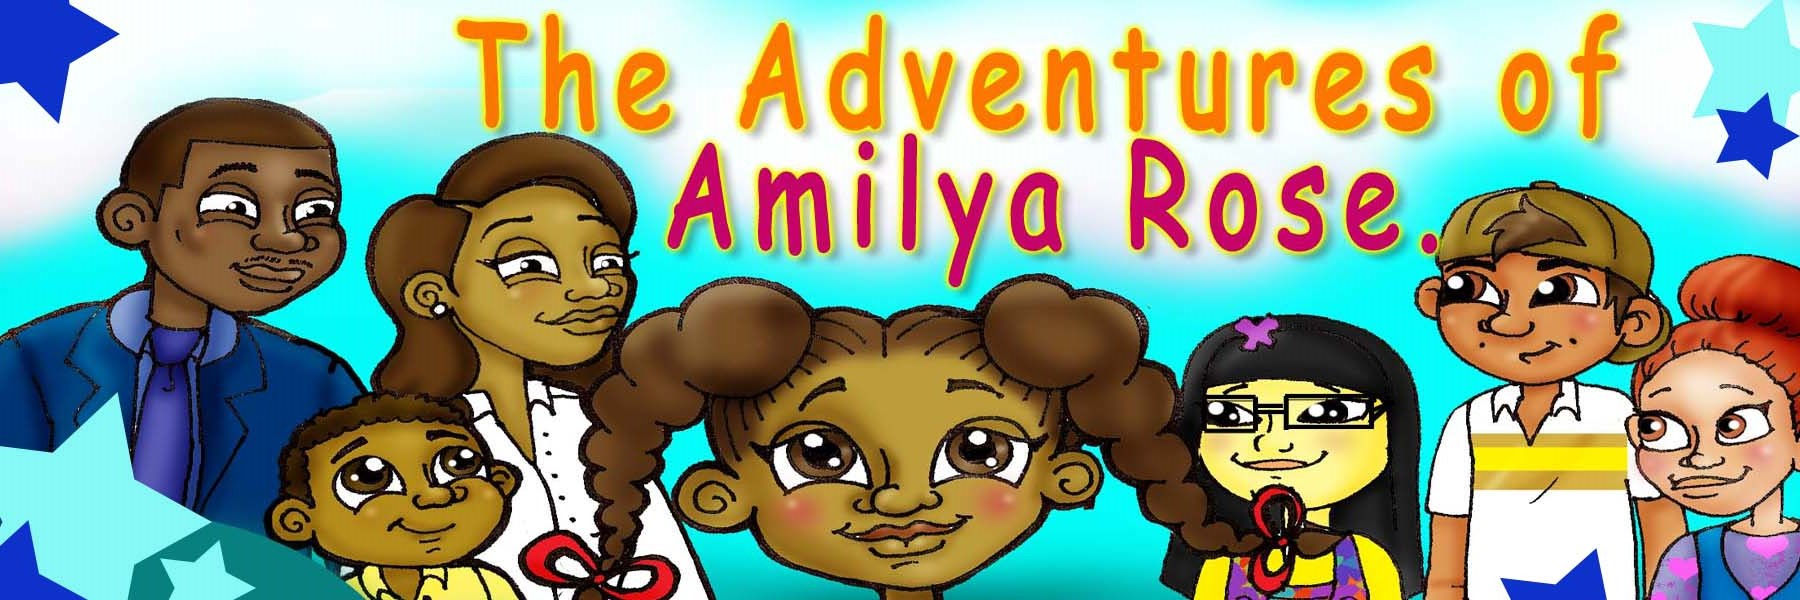 The Adventures of Amilya Rose by Chavonne Stewart